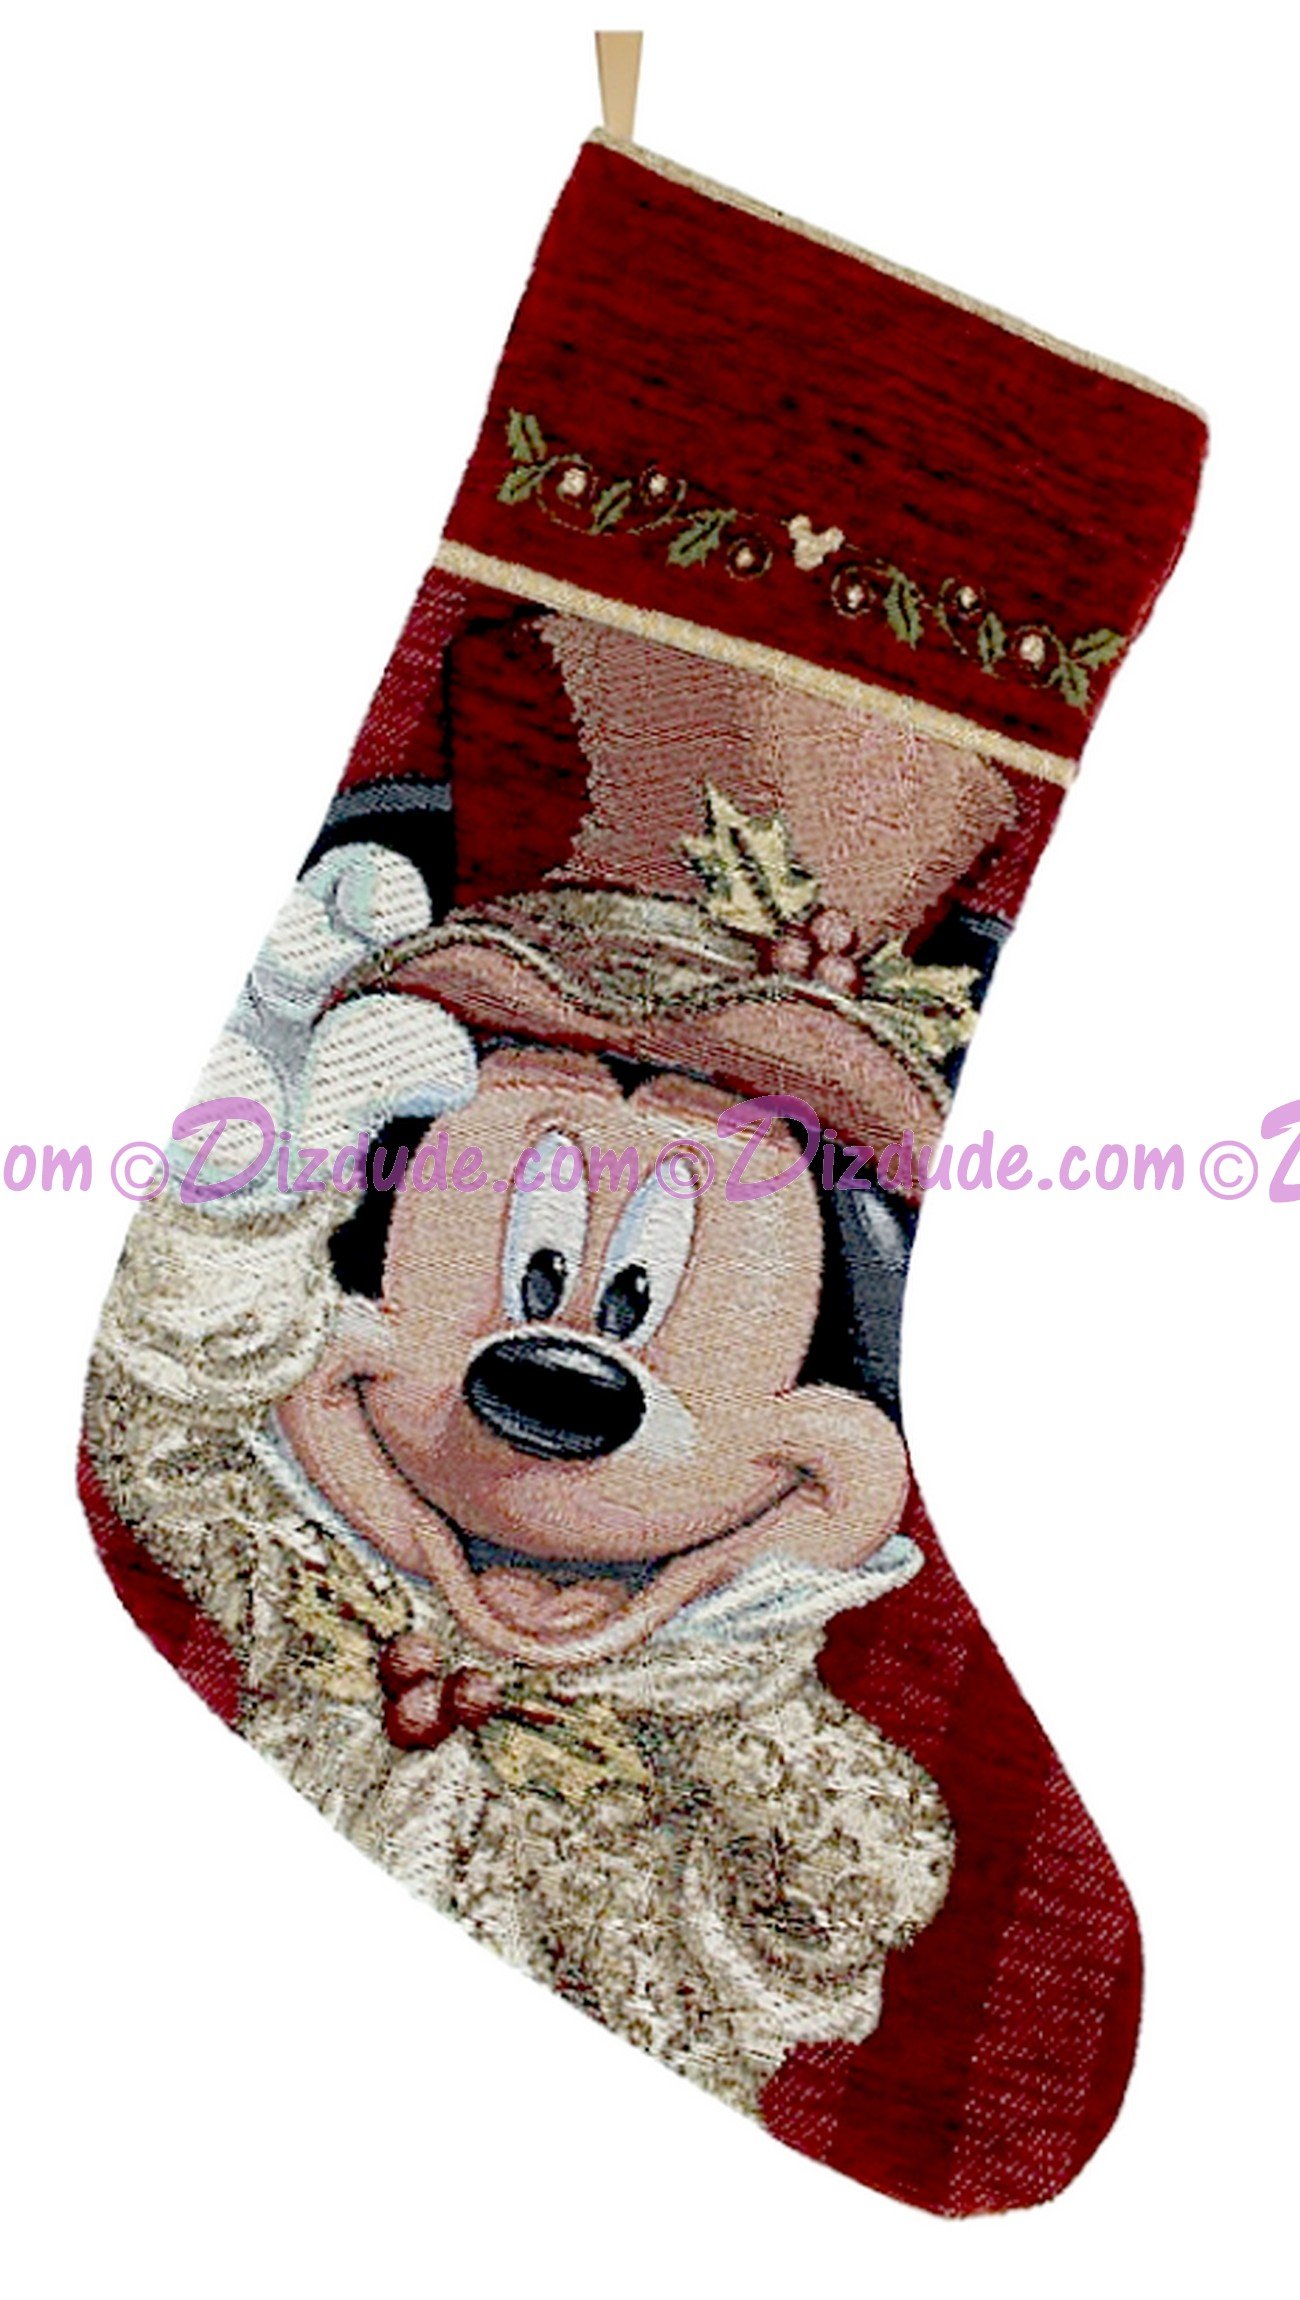 Disney Victorian Mickey Tapestry Christmas Stocking © Dizdude.com